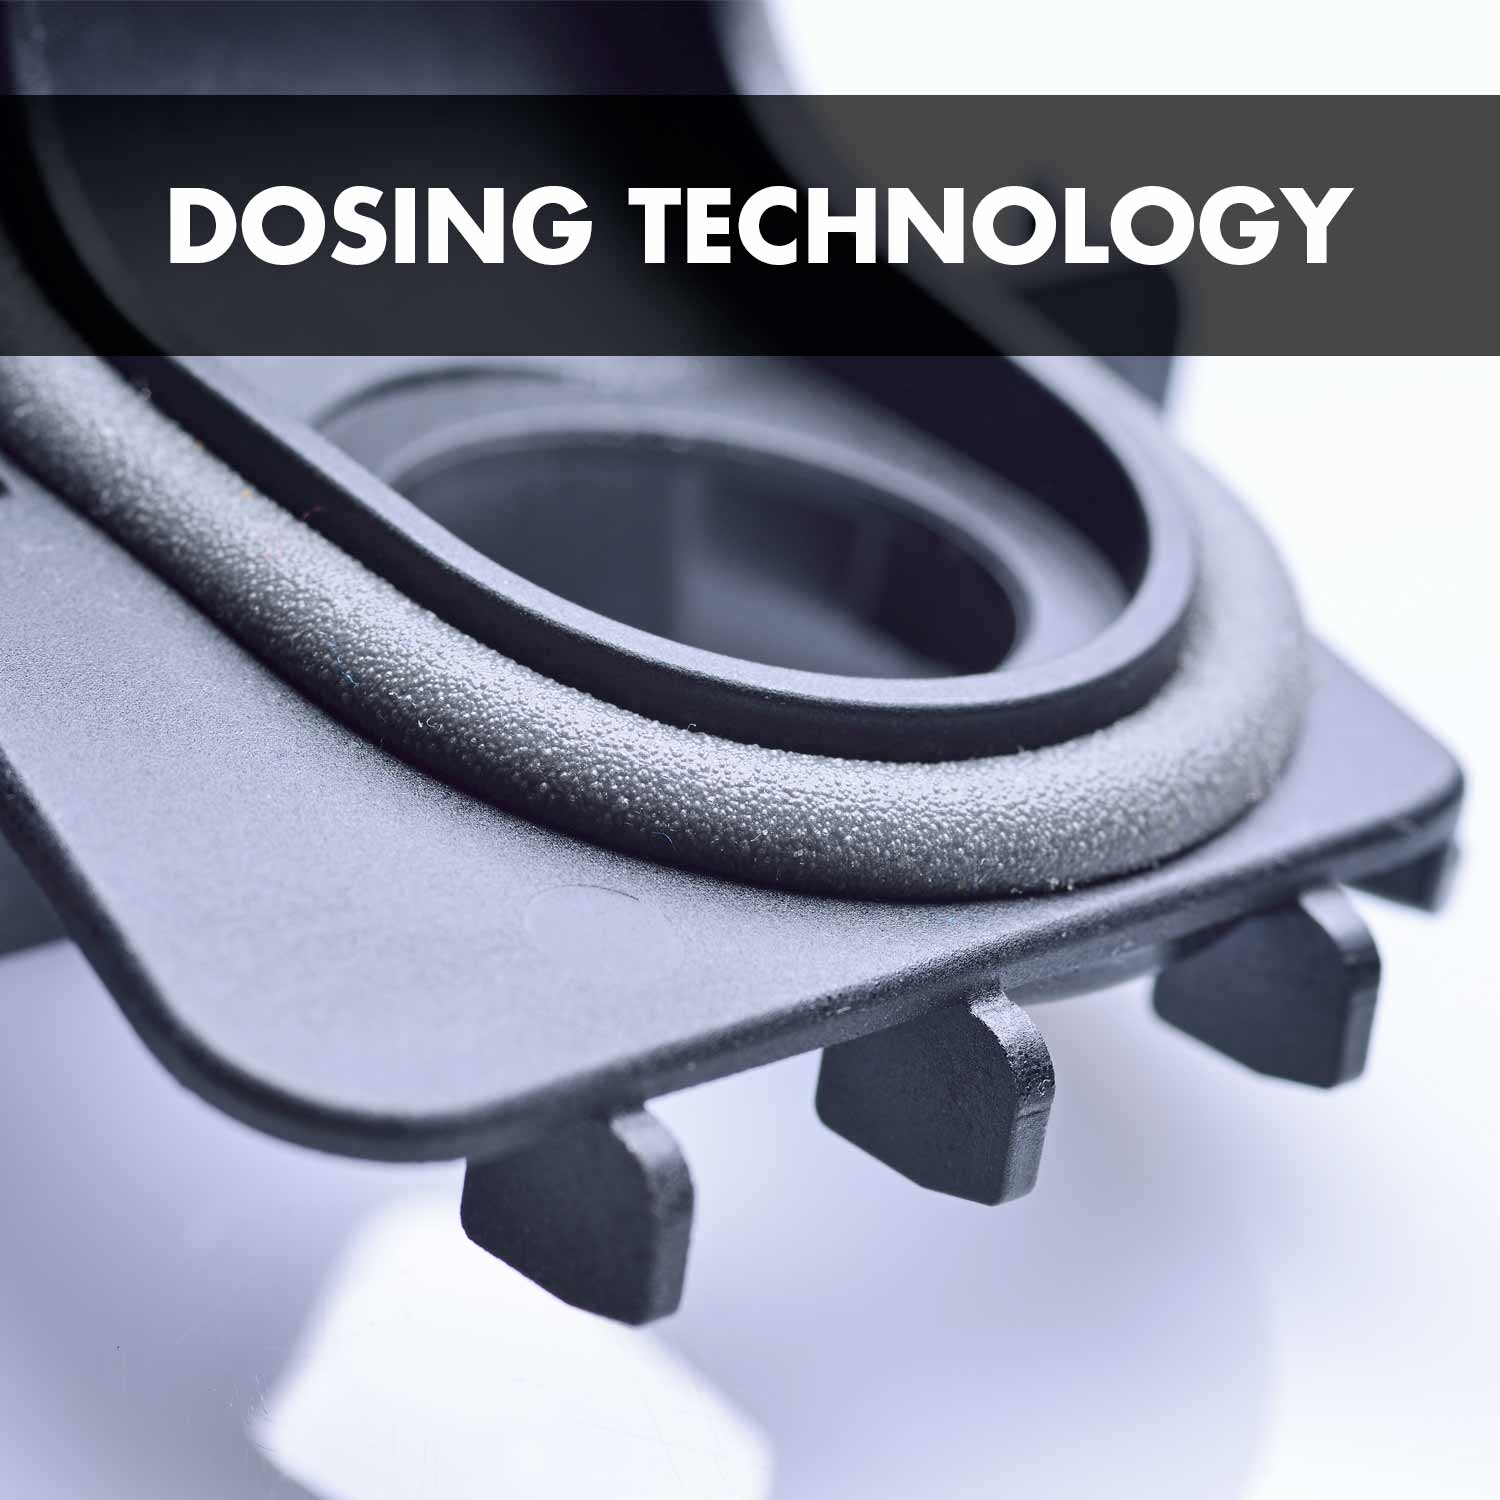 Dosing technology